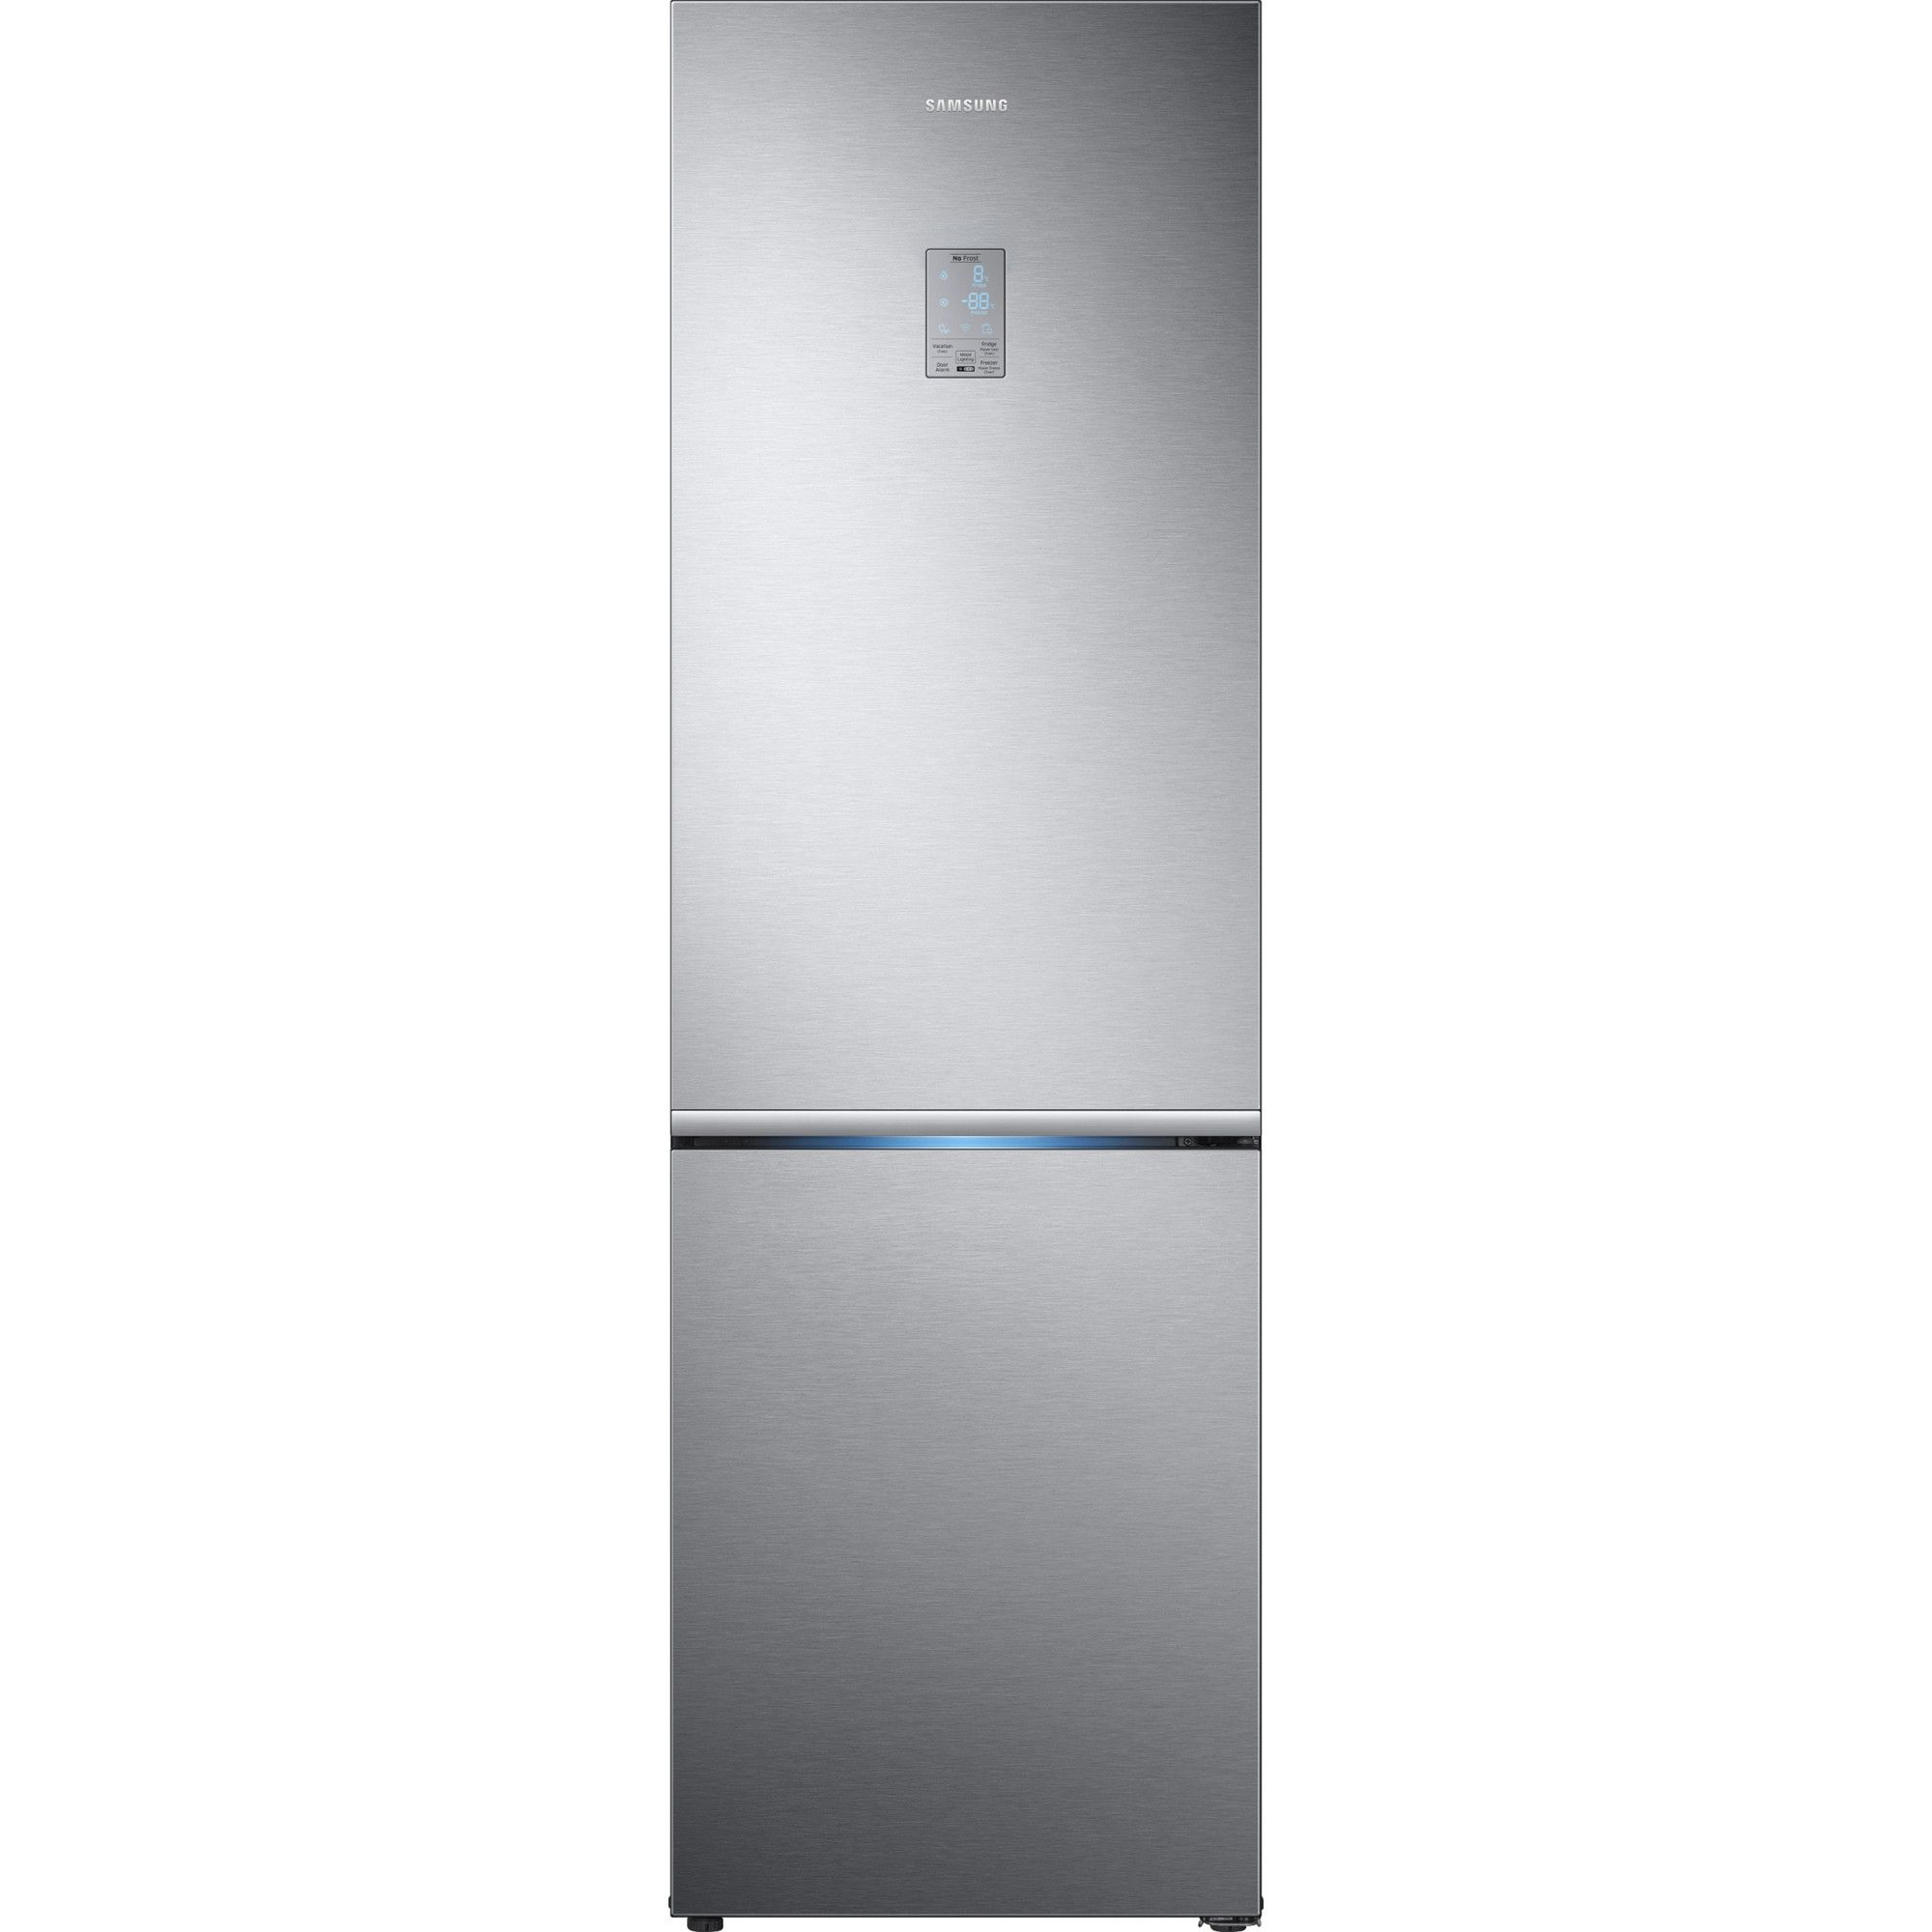 Combina frigorifica Samsung RB34K6000SS/EF, 344l, Clasa A+, Full No Frost, Power Cool, Power Freeze, Inox